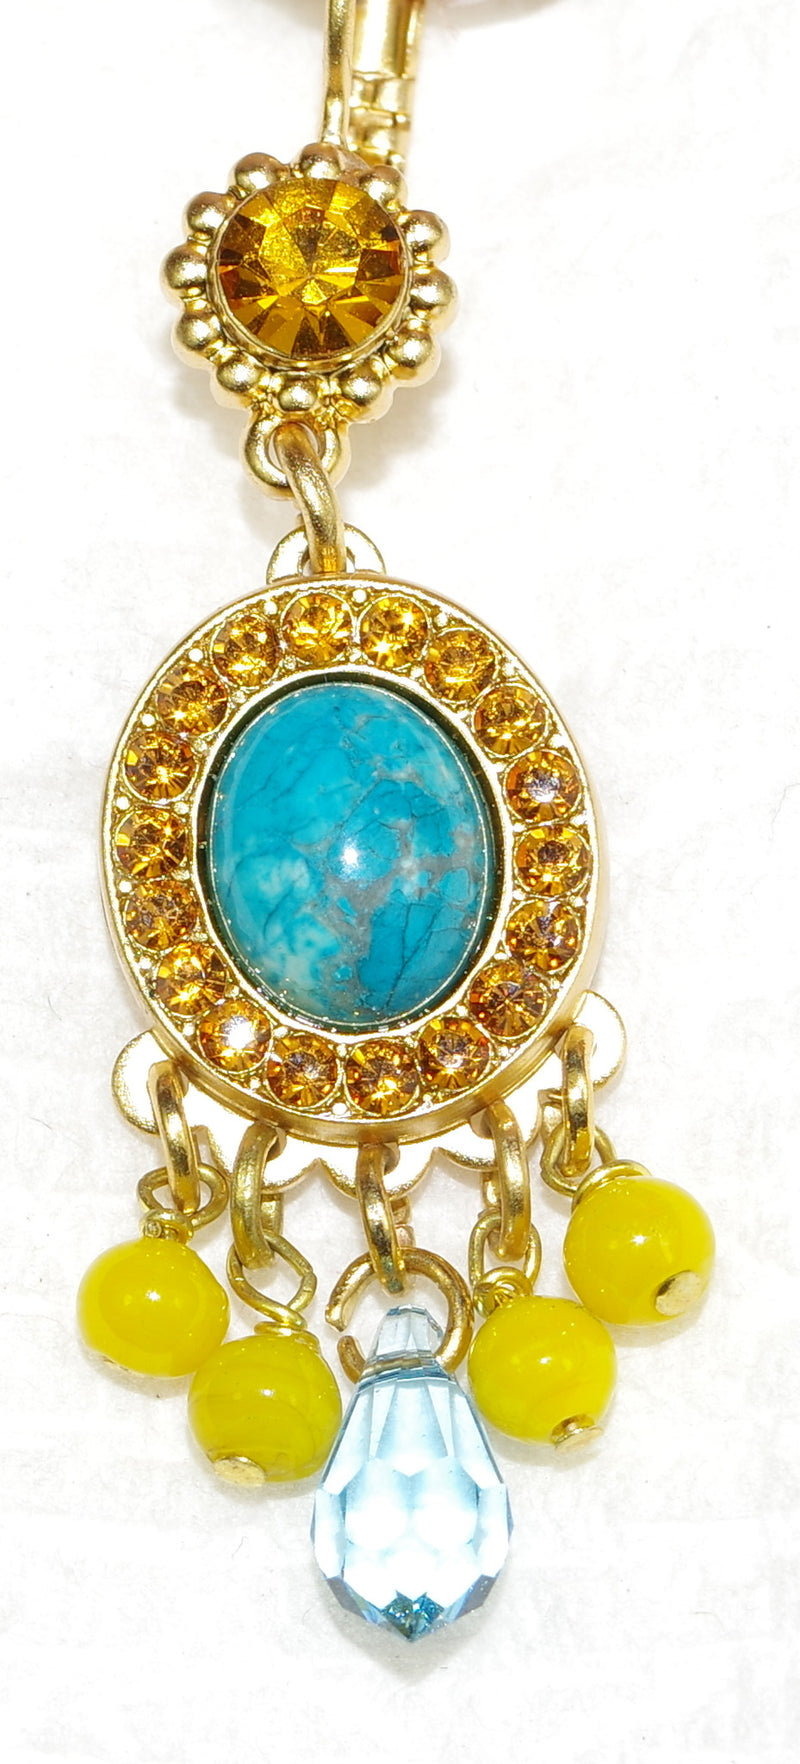 "MARIANA EARRINGS JASMINE: yellow, turq, blue, amber stones in 1.75"" yellow gold setting, lever back"